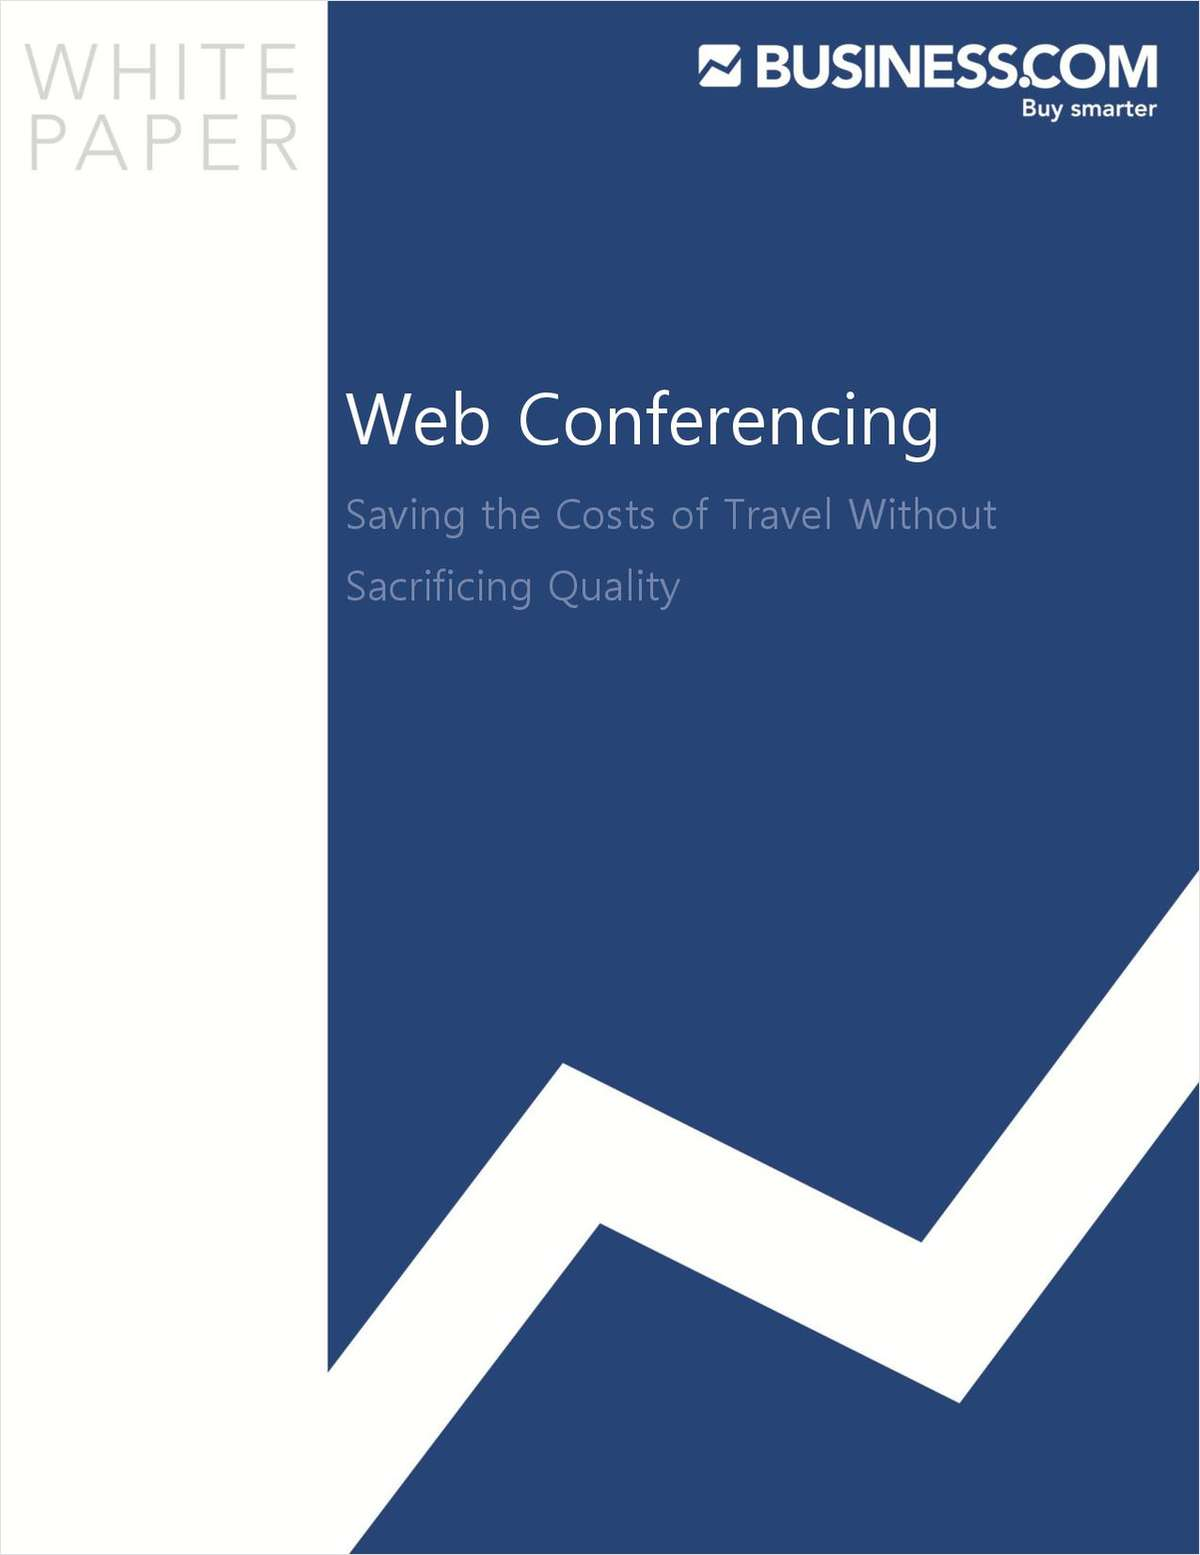 Web Conferencing:  Saving the Costs of Travel Without Sacrificing Quality